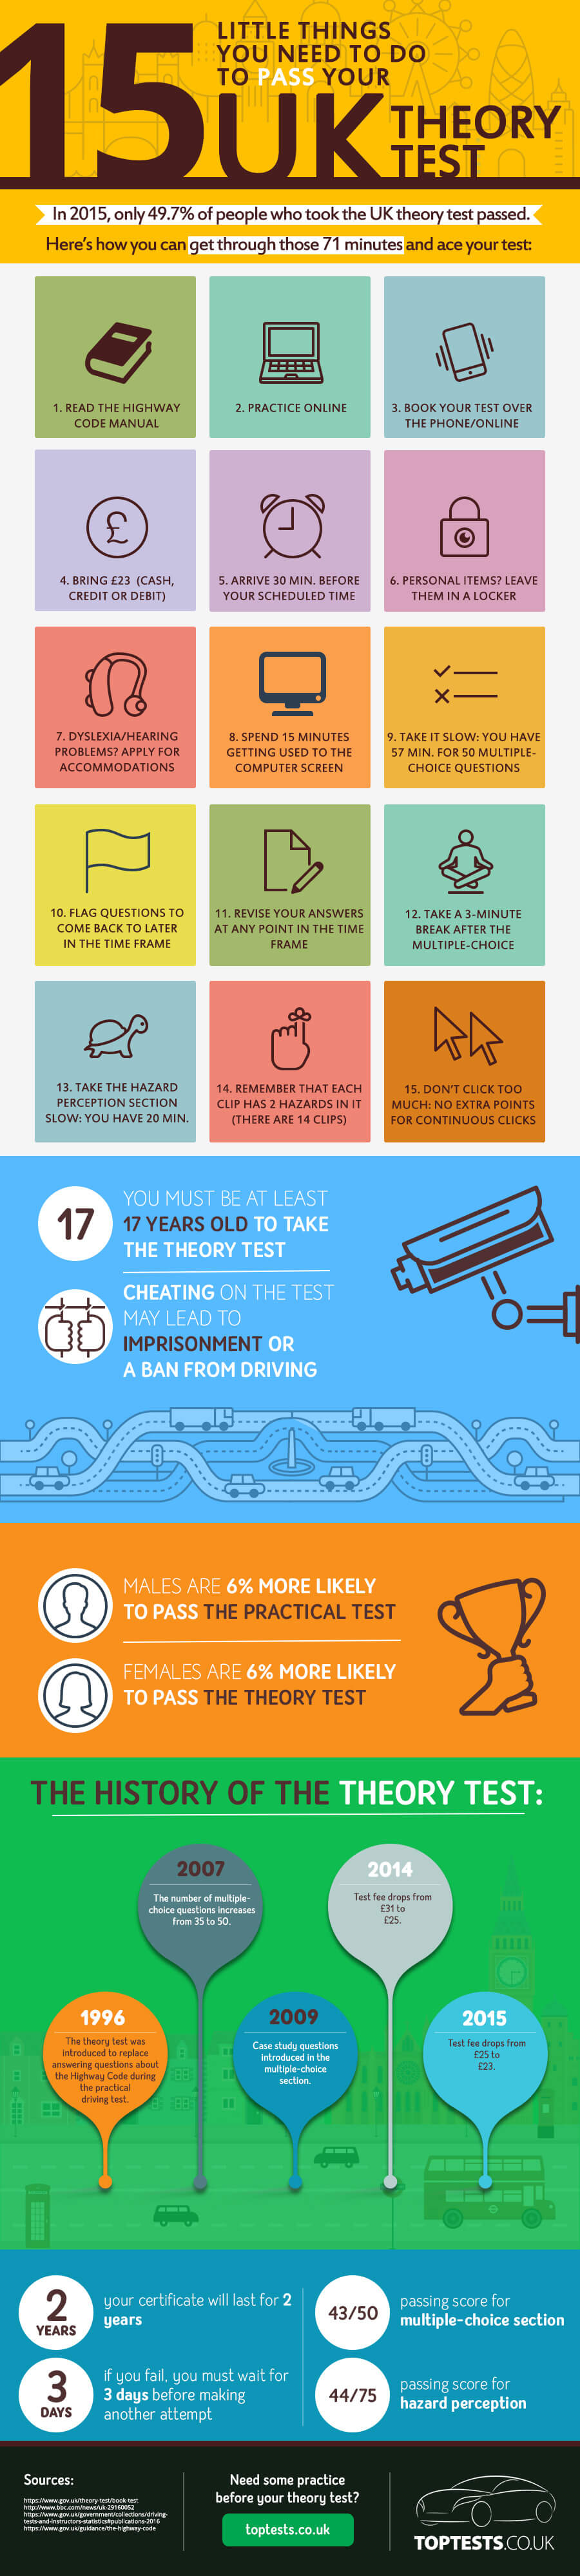 Pass Your UK Theory Test infographic